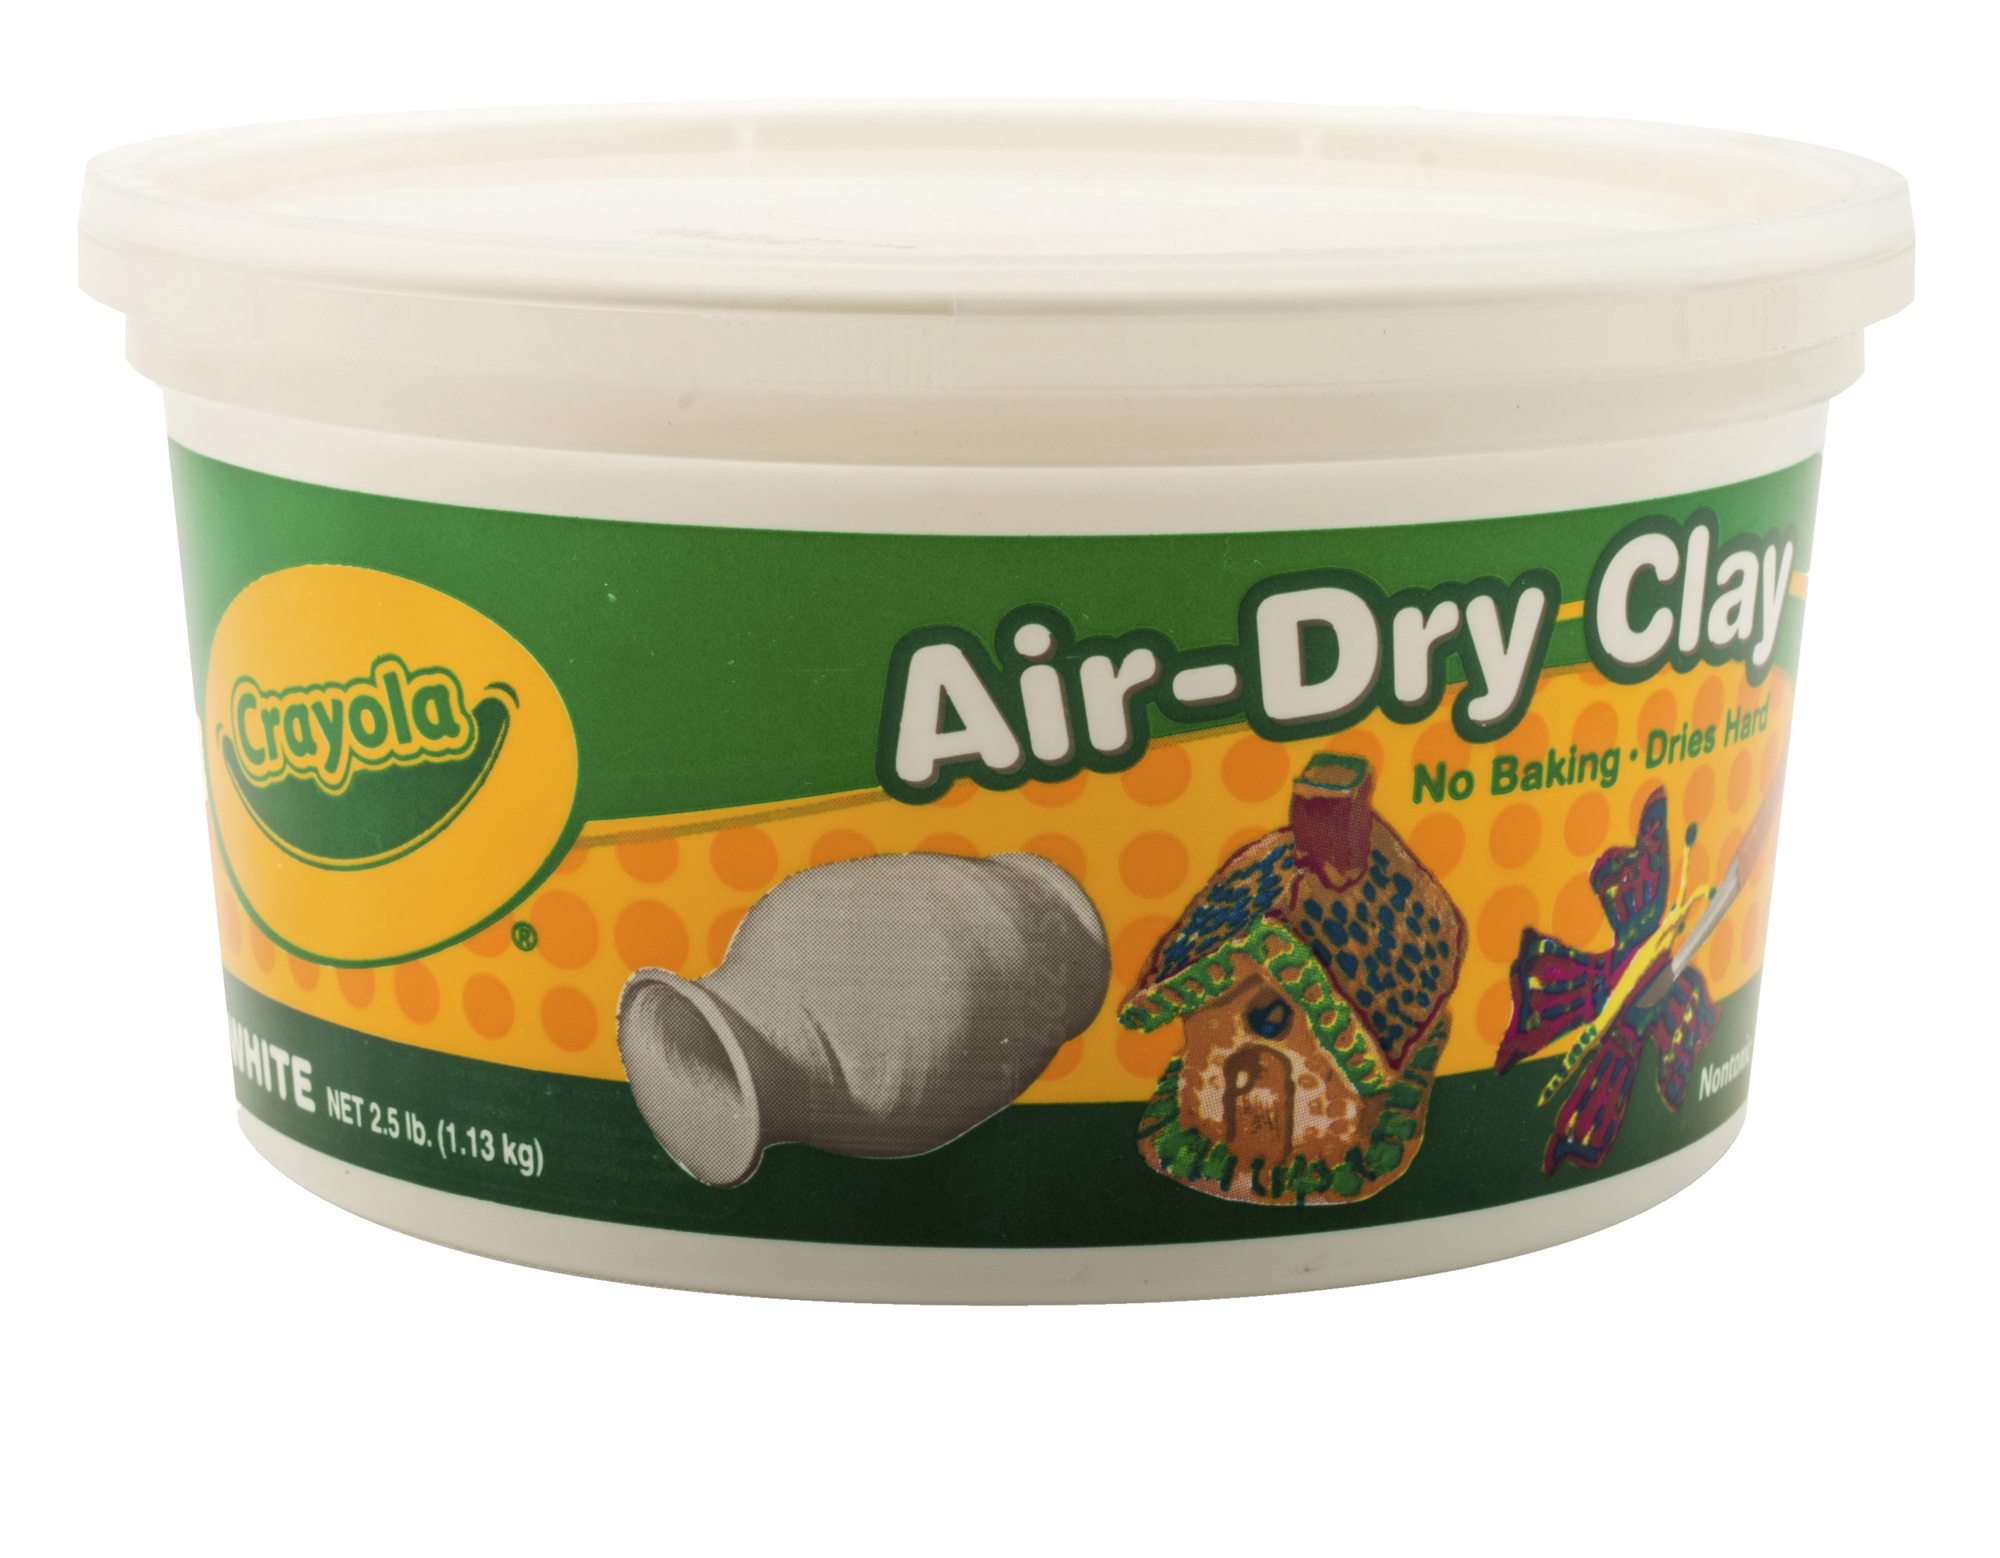 Crayola Air-Dry Clay 2.5 Lb Resealable Bucket